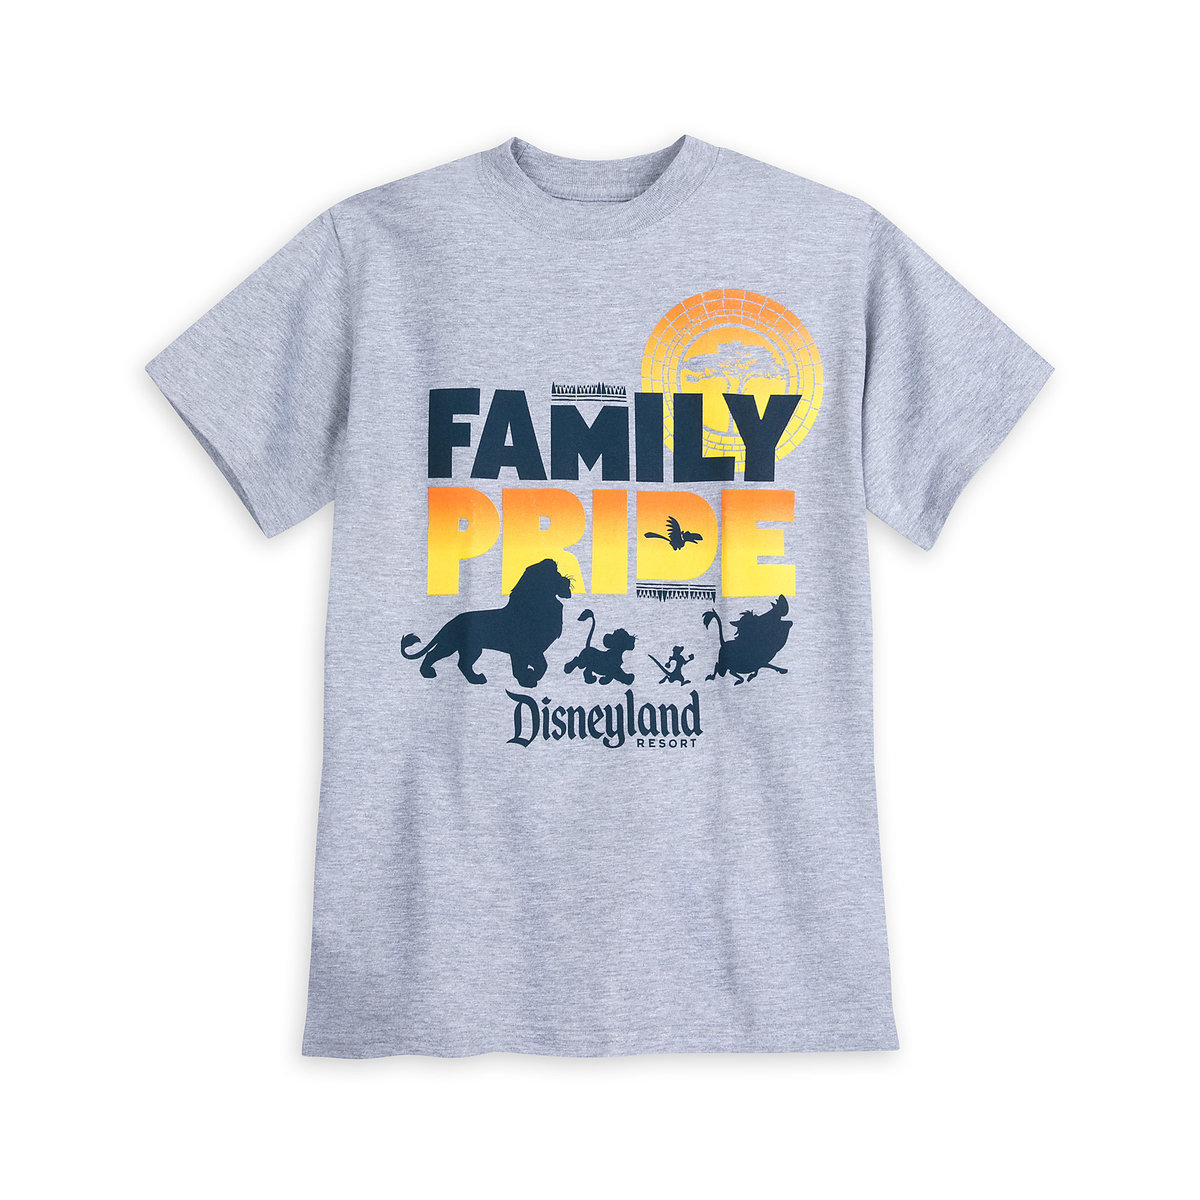 66c65e105 Product Image of The Lion King Family Pride T-Shirt for Kids - Disneyland #